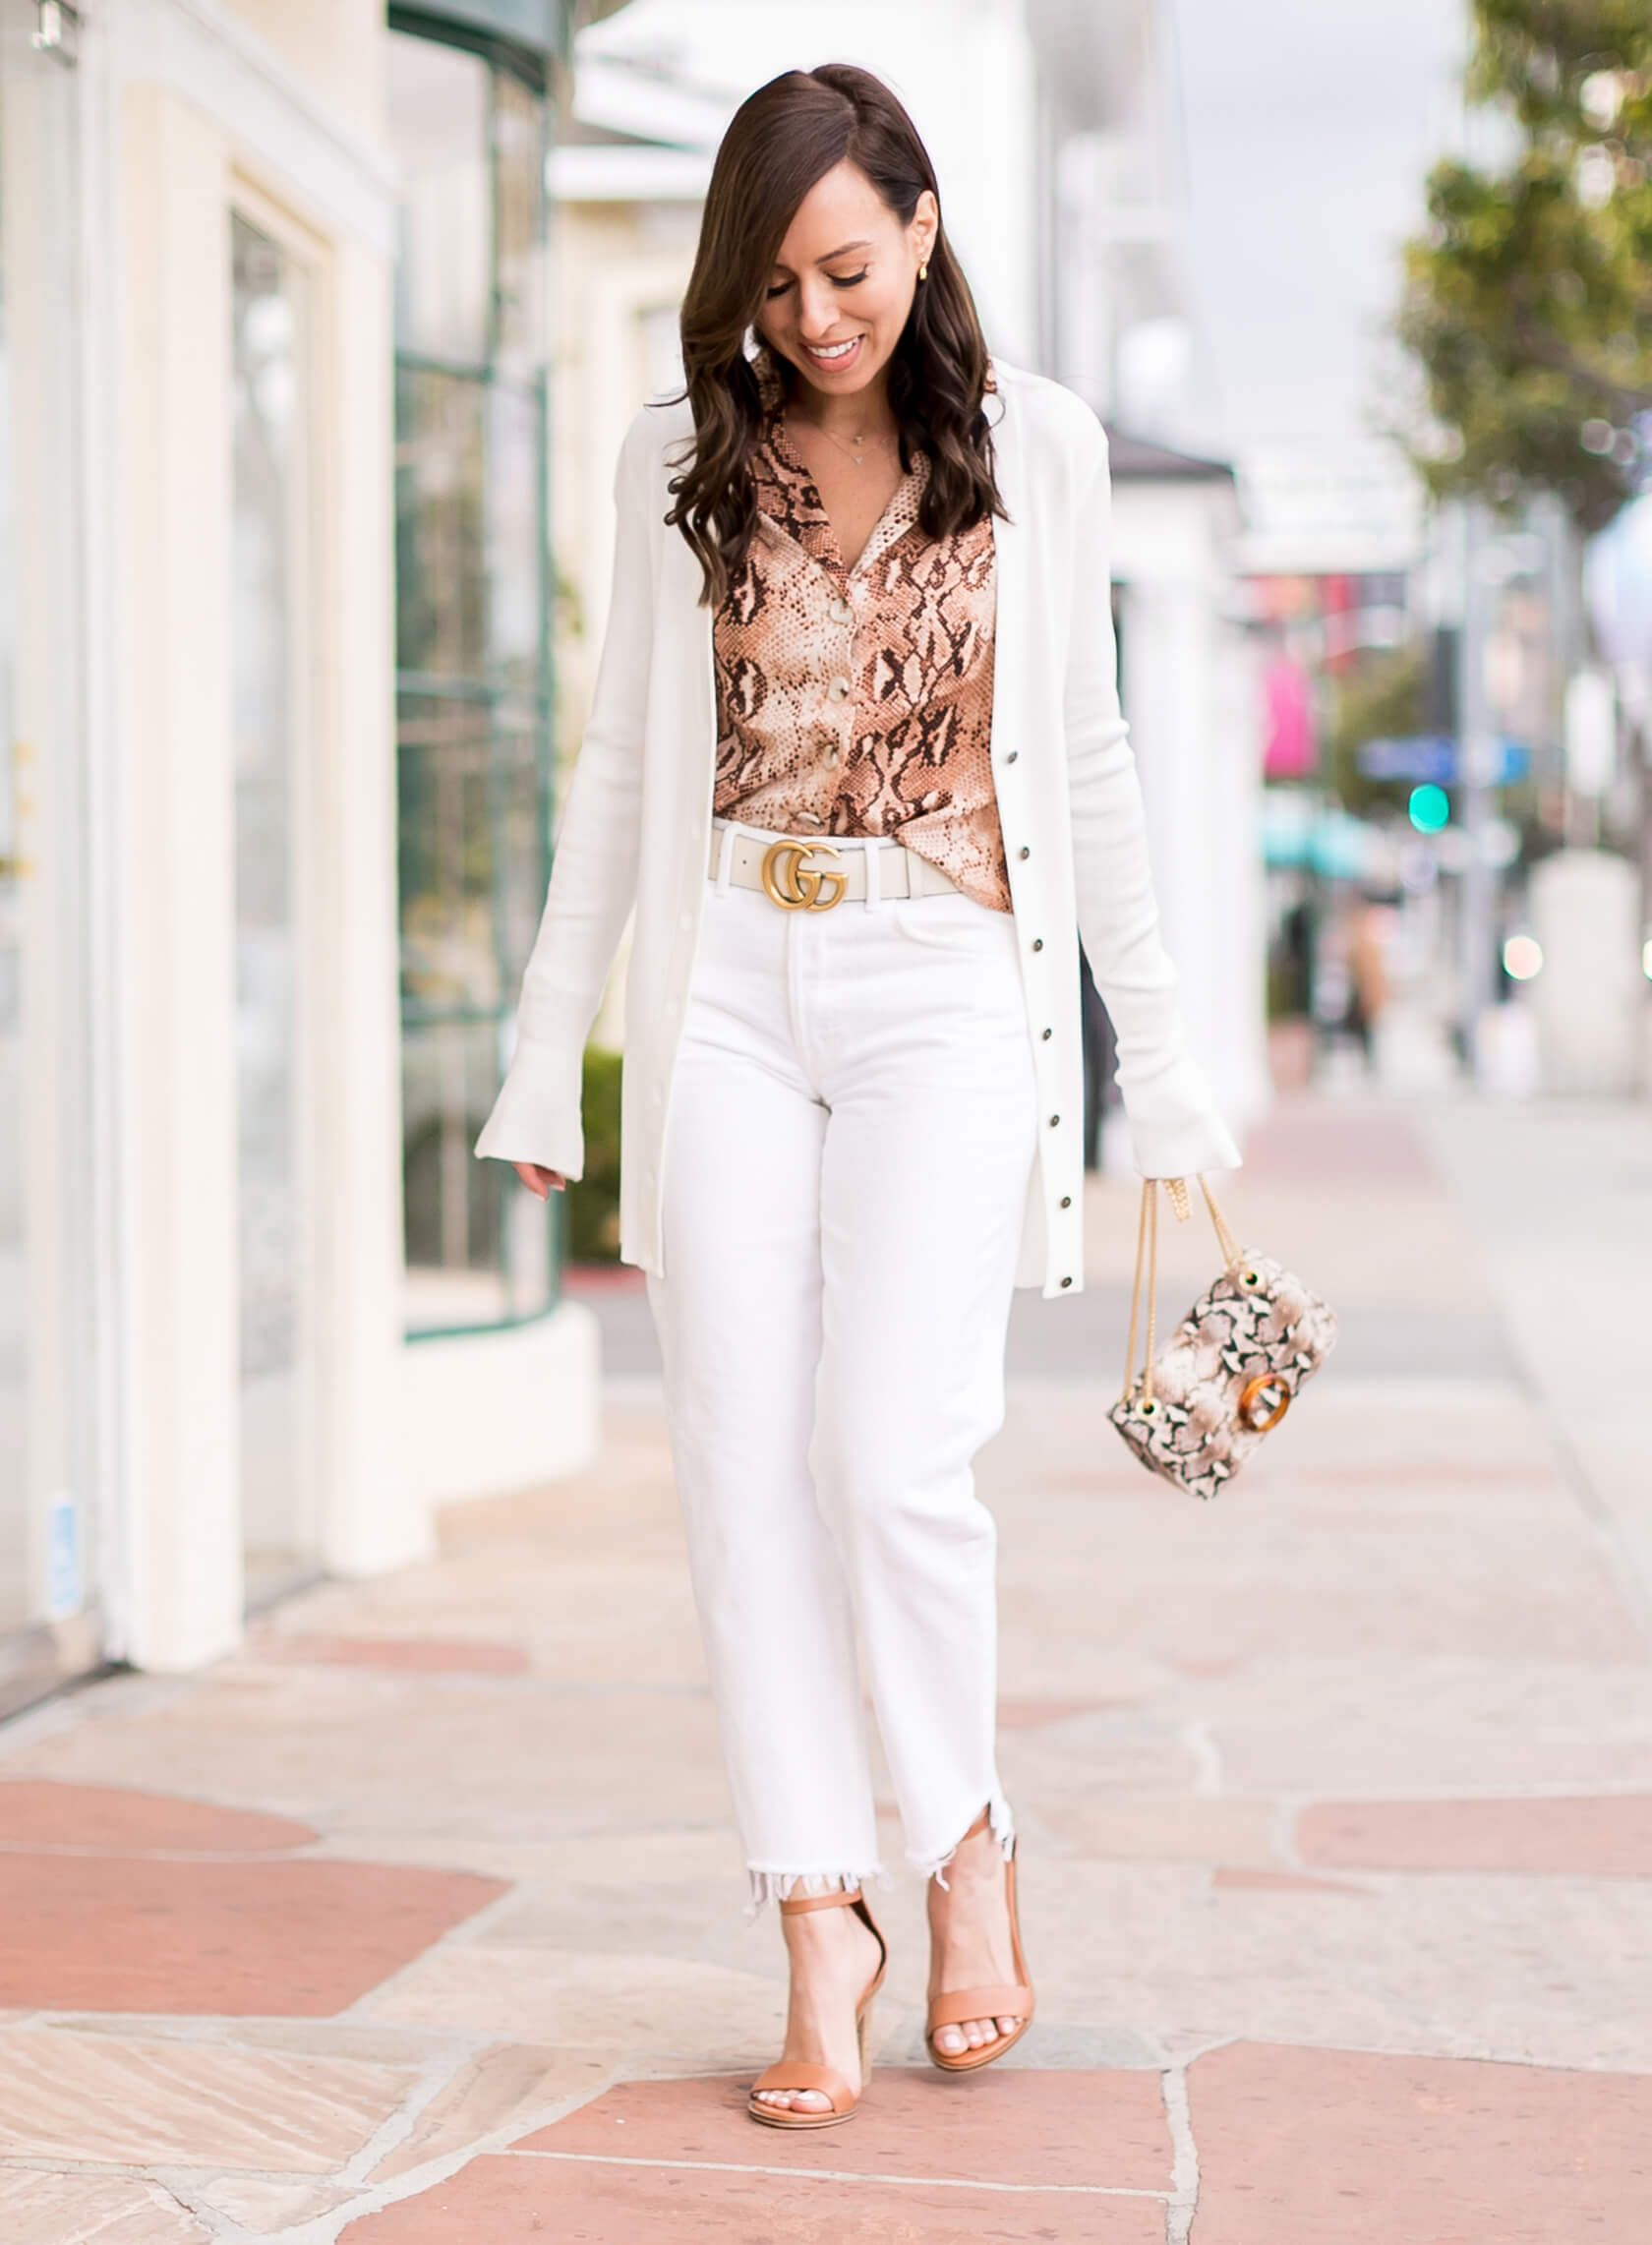 a68aeae5ba86 Sydne Style shows how to wear white jeans for spring outfit ideas with the  snakeskin trend #snakeskin #gucci #guccibelt #cardigan #casualstyle #white # jeans ...